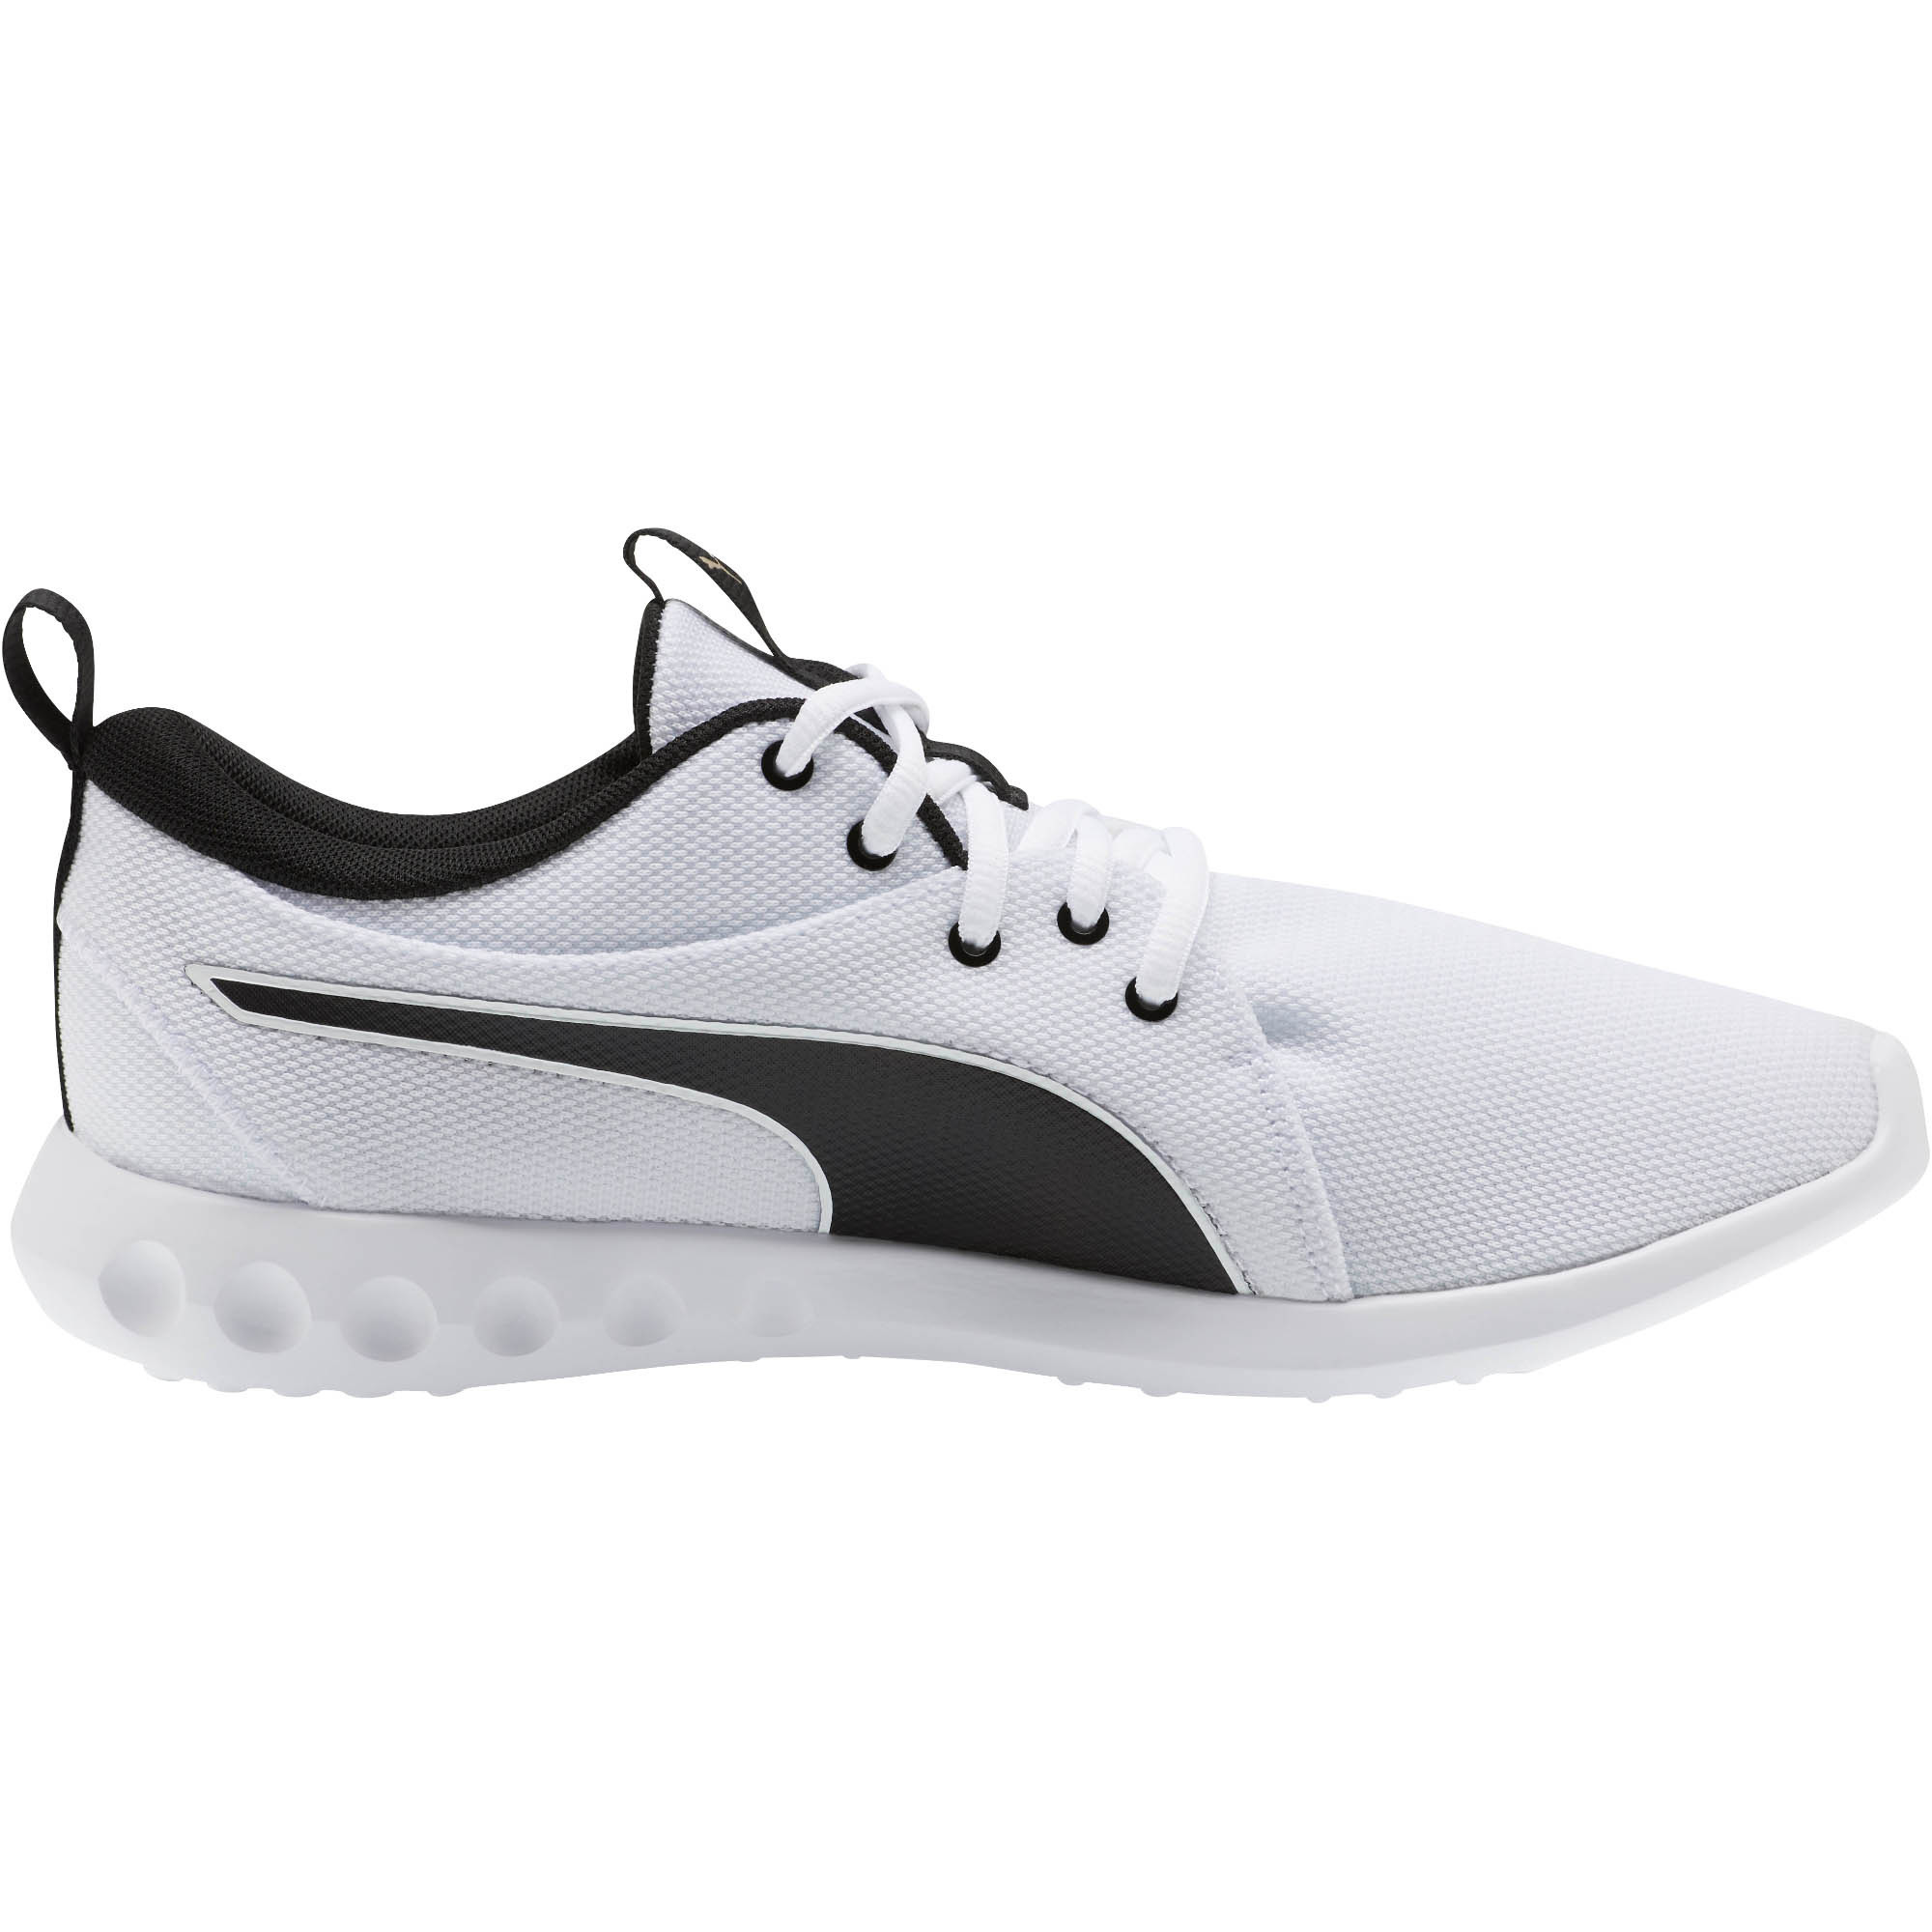 PUMA-Men-039-s-Carson-2-Cosmo-Running-Shoes thumbnail 15